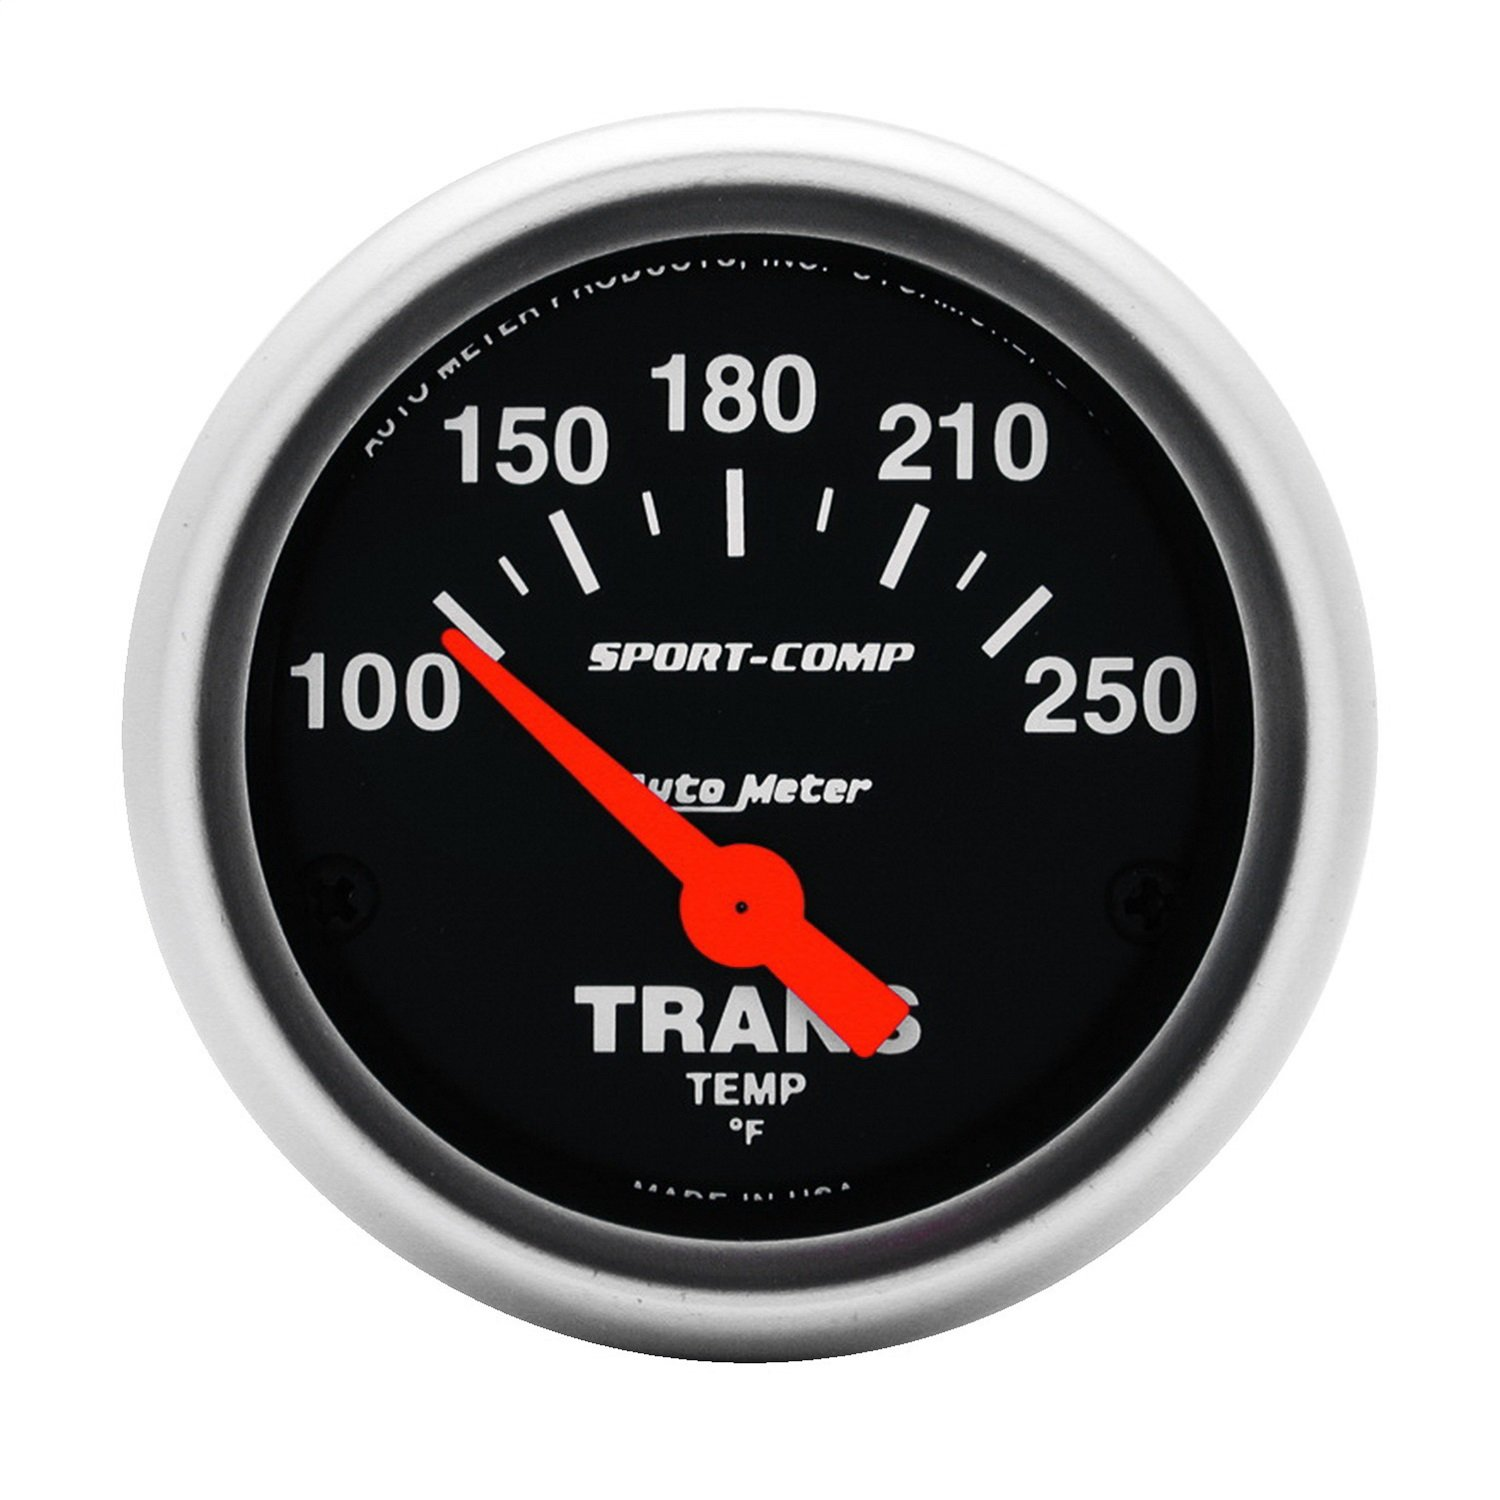 Auto Meter 3357 Sport-Comp Electric Transmission Temperature Gauge by AUTO METER